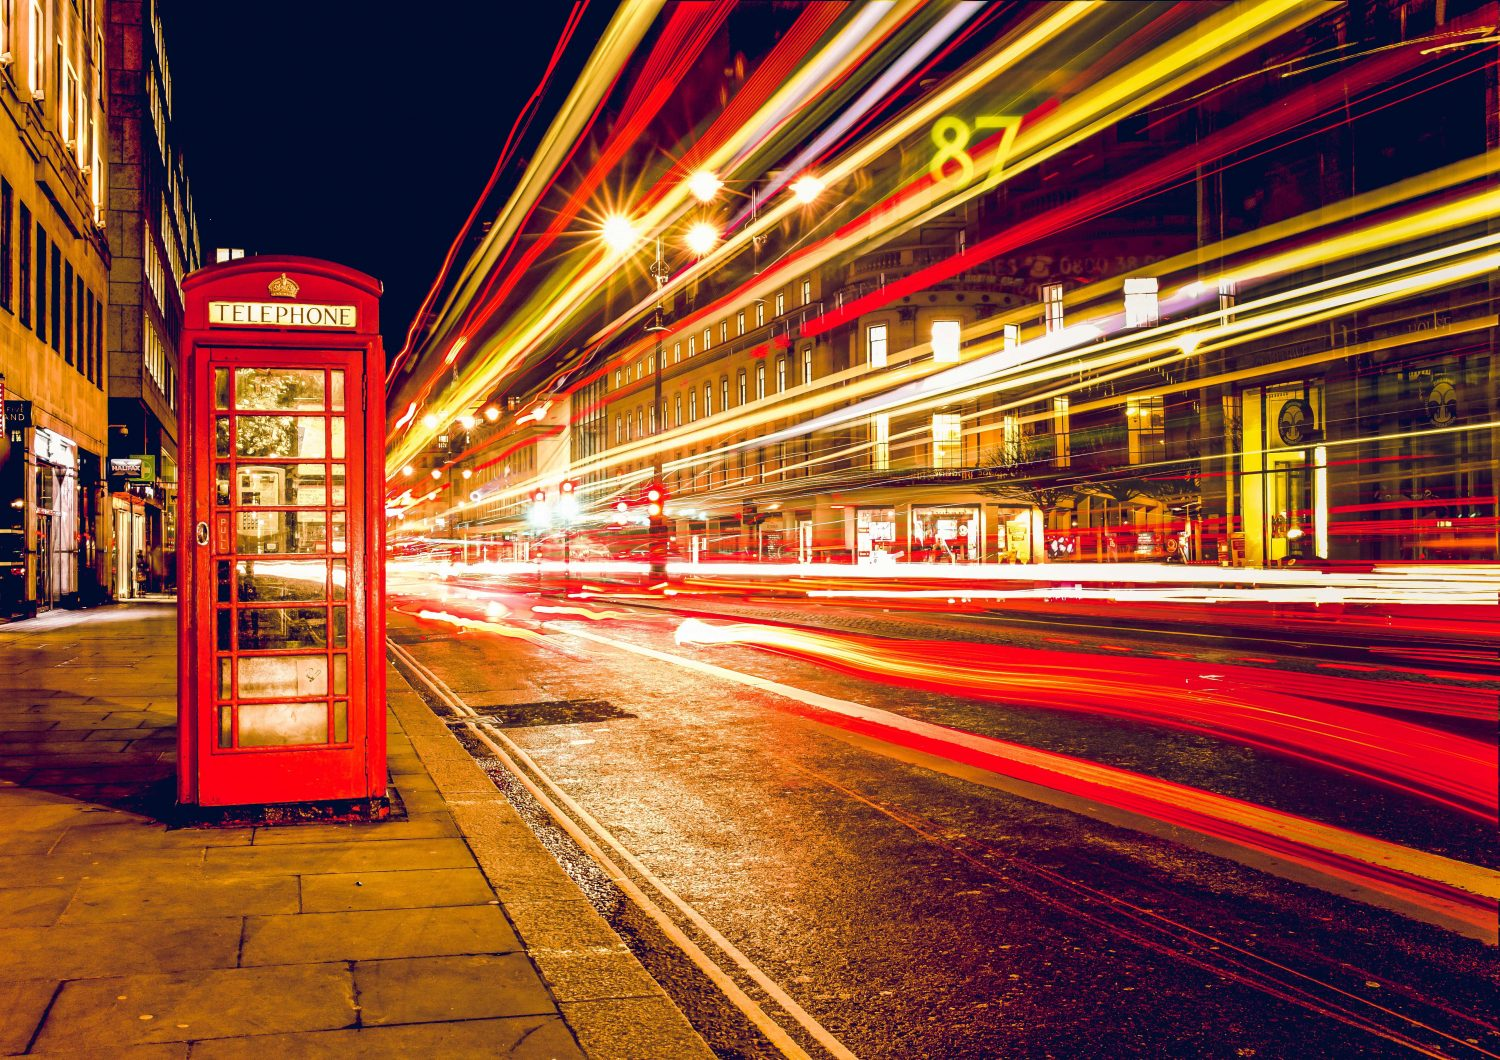 2 Day London Pass - A red telephone box at night in London